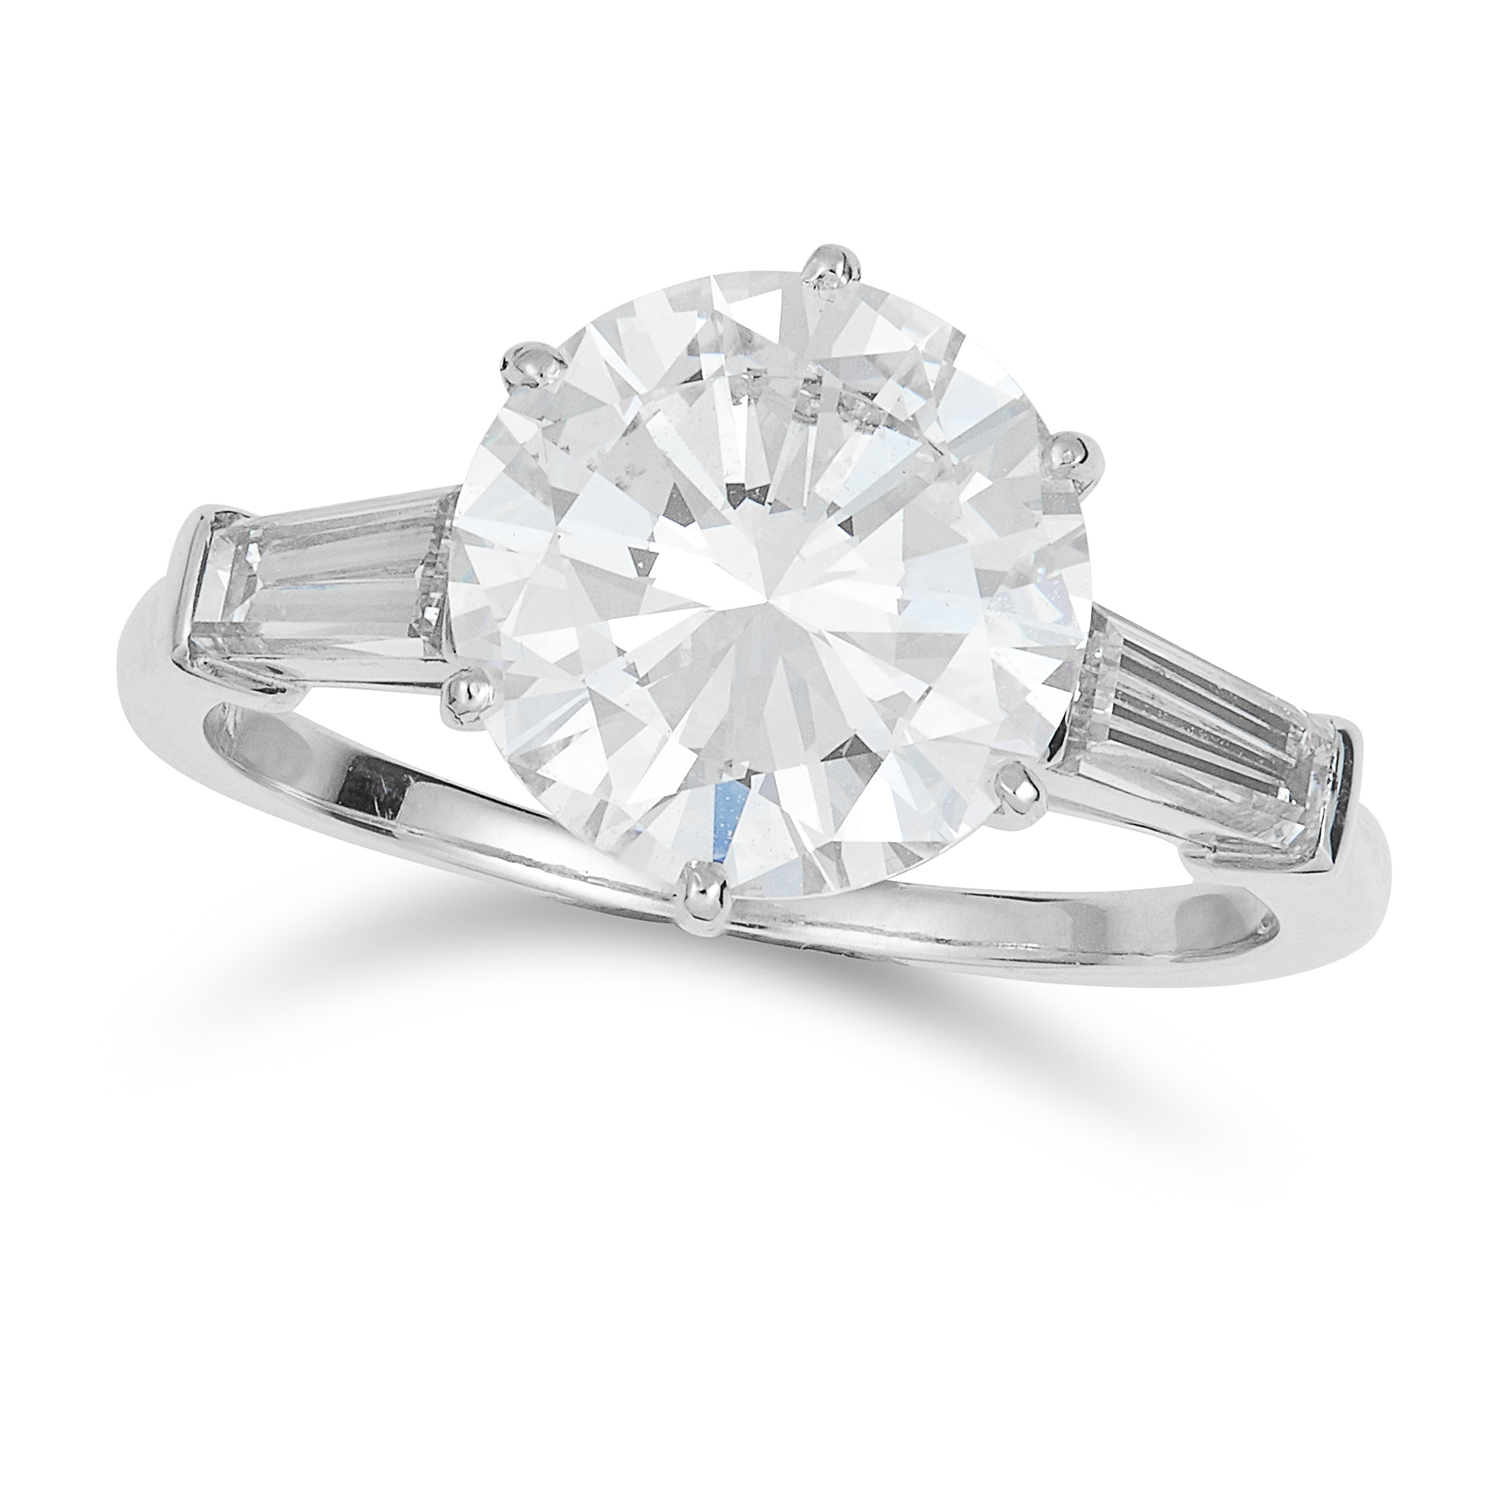 A 3.03 CARAT DIAMOND RING, VAN CLEEF AND ARPELS in platinum, set with a round cut diamond of 3.03